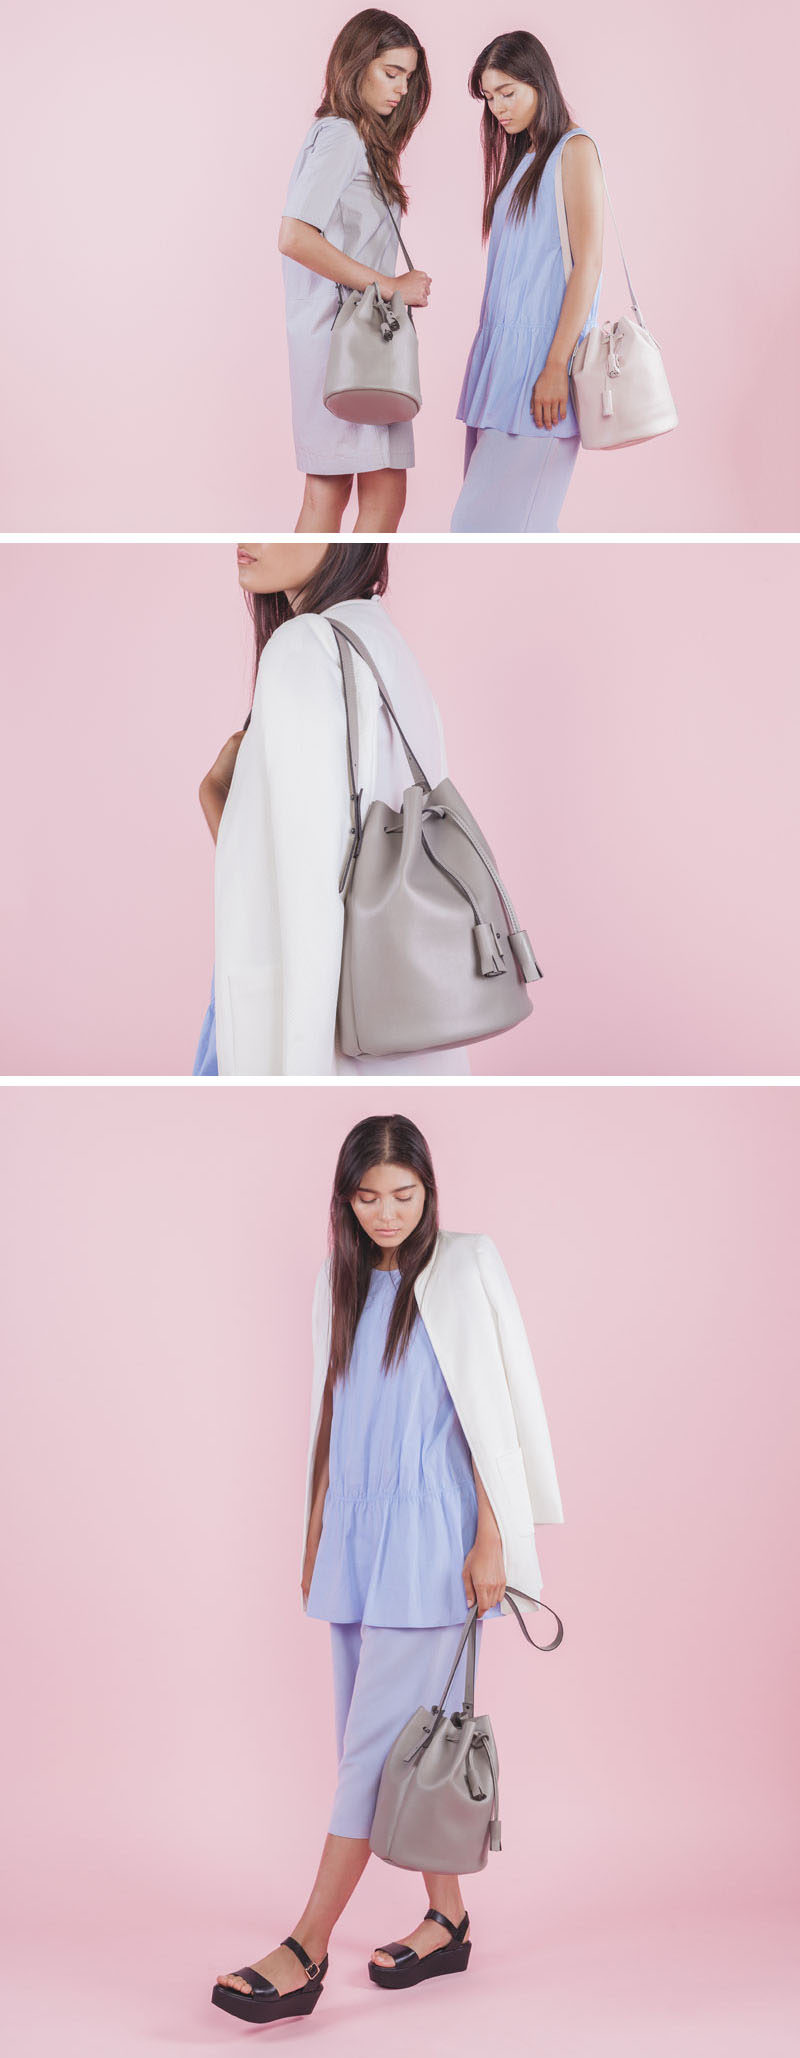 Women's Fashion Ideas - The M.R.K.T.'s Spring 2017 Collection // This minimalist bag puts a modern twist on the classic bucket bag style. The bags are available in a number of colors and are made from either MCRO LEATHER or MCRO SUEDE to create a simple bag with a smooth exterior and a surprising durability.